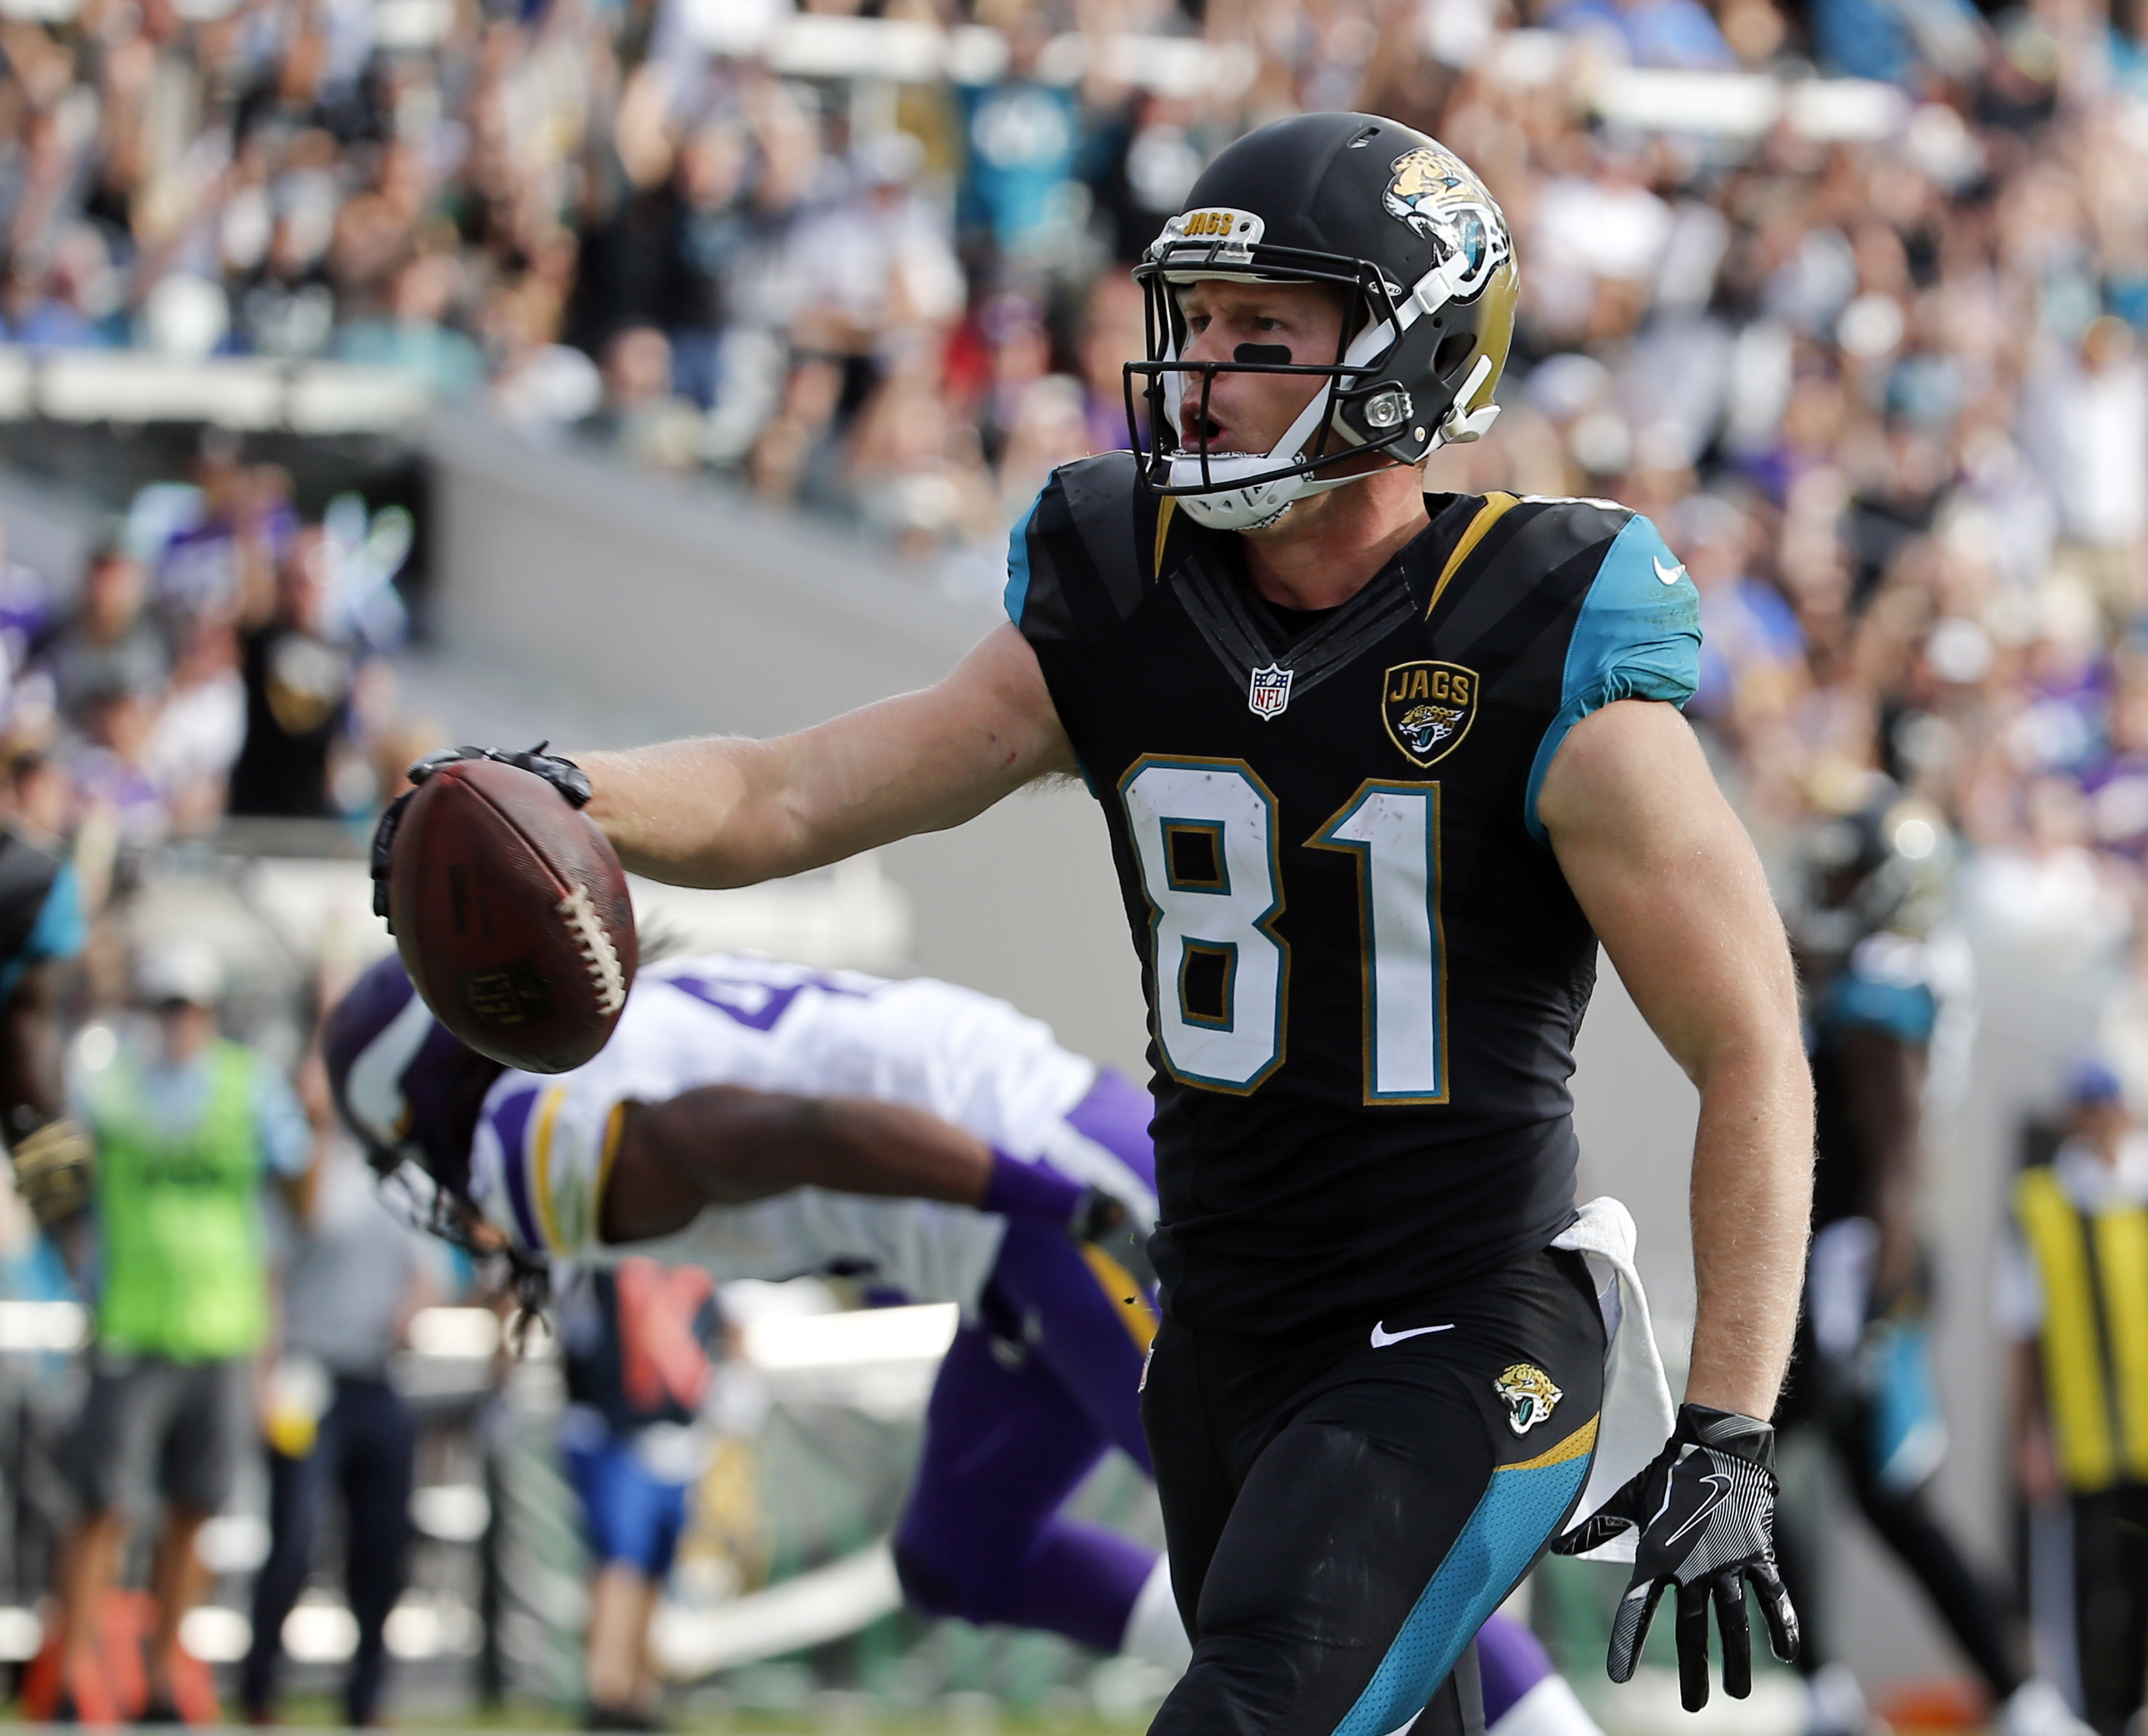 Jacksonville Jaguars wide receiver Bryan Walters celebrates his 14-yard touchdown on a pass play against the Minnesota Vikings during the second half of an NFL football game, Sunday, Dec. 11, 2016, in Jacksonville, Fla. (AP Photo/Stephen B. Morton)